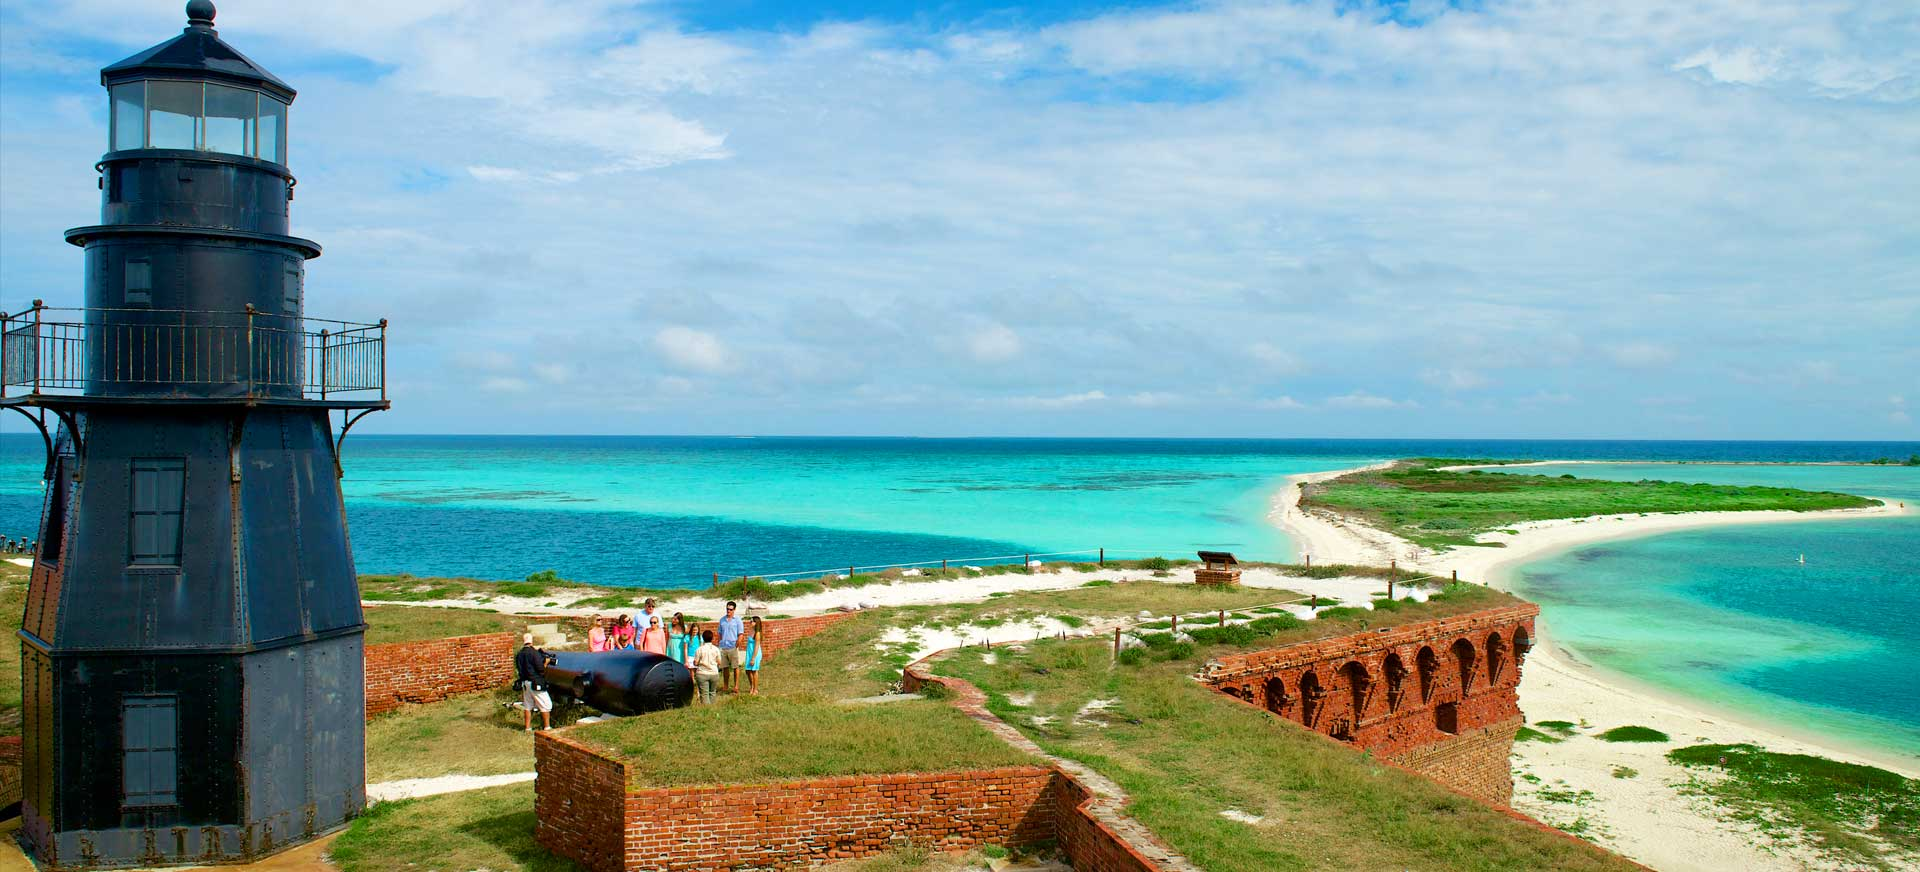 A group touring the grounds of Ft. Jefferson standing next to a cannon as the sea of the Dry Tortugas stretches out before them